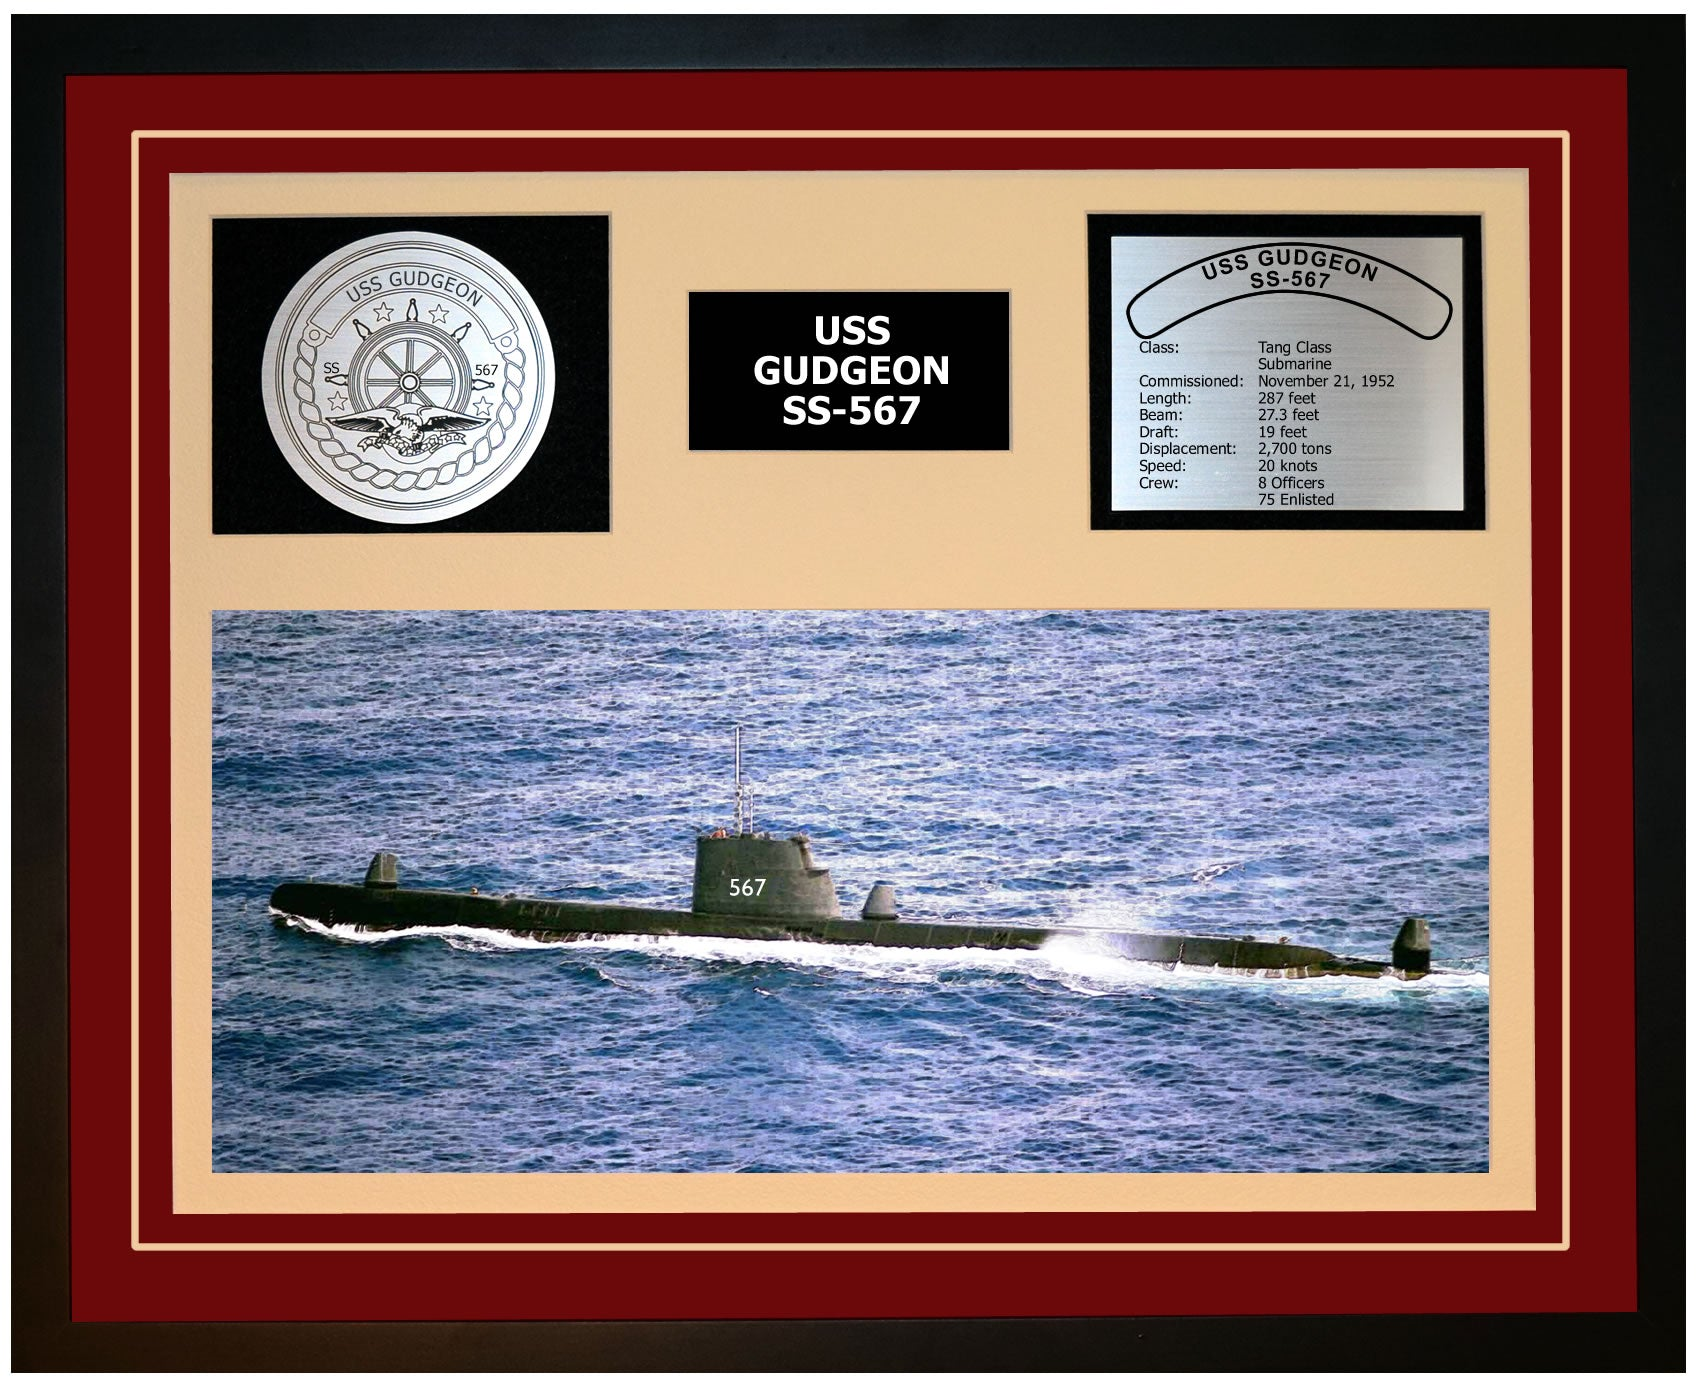 USS GUDGEON SS-567 Framed Navy Ship Display Burgundy